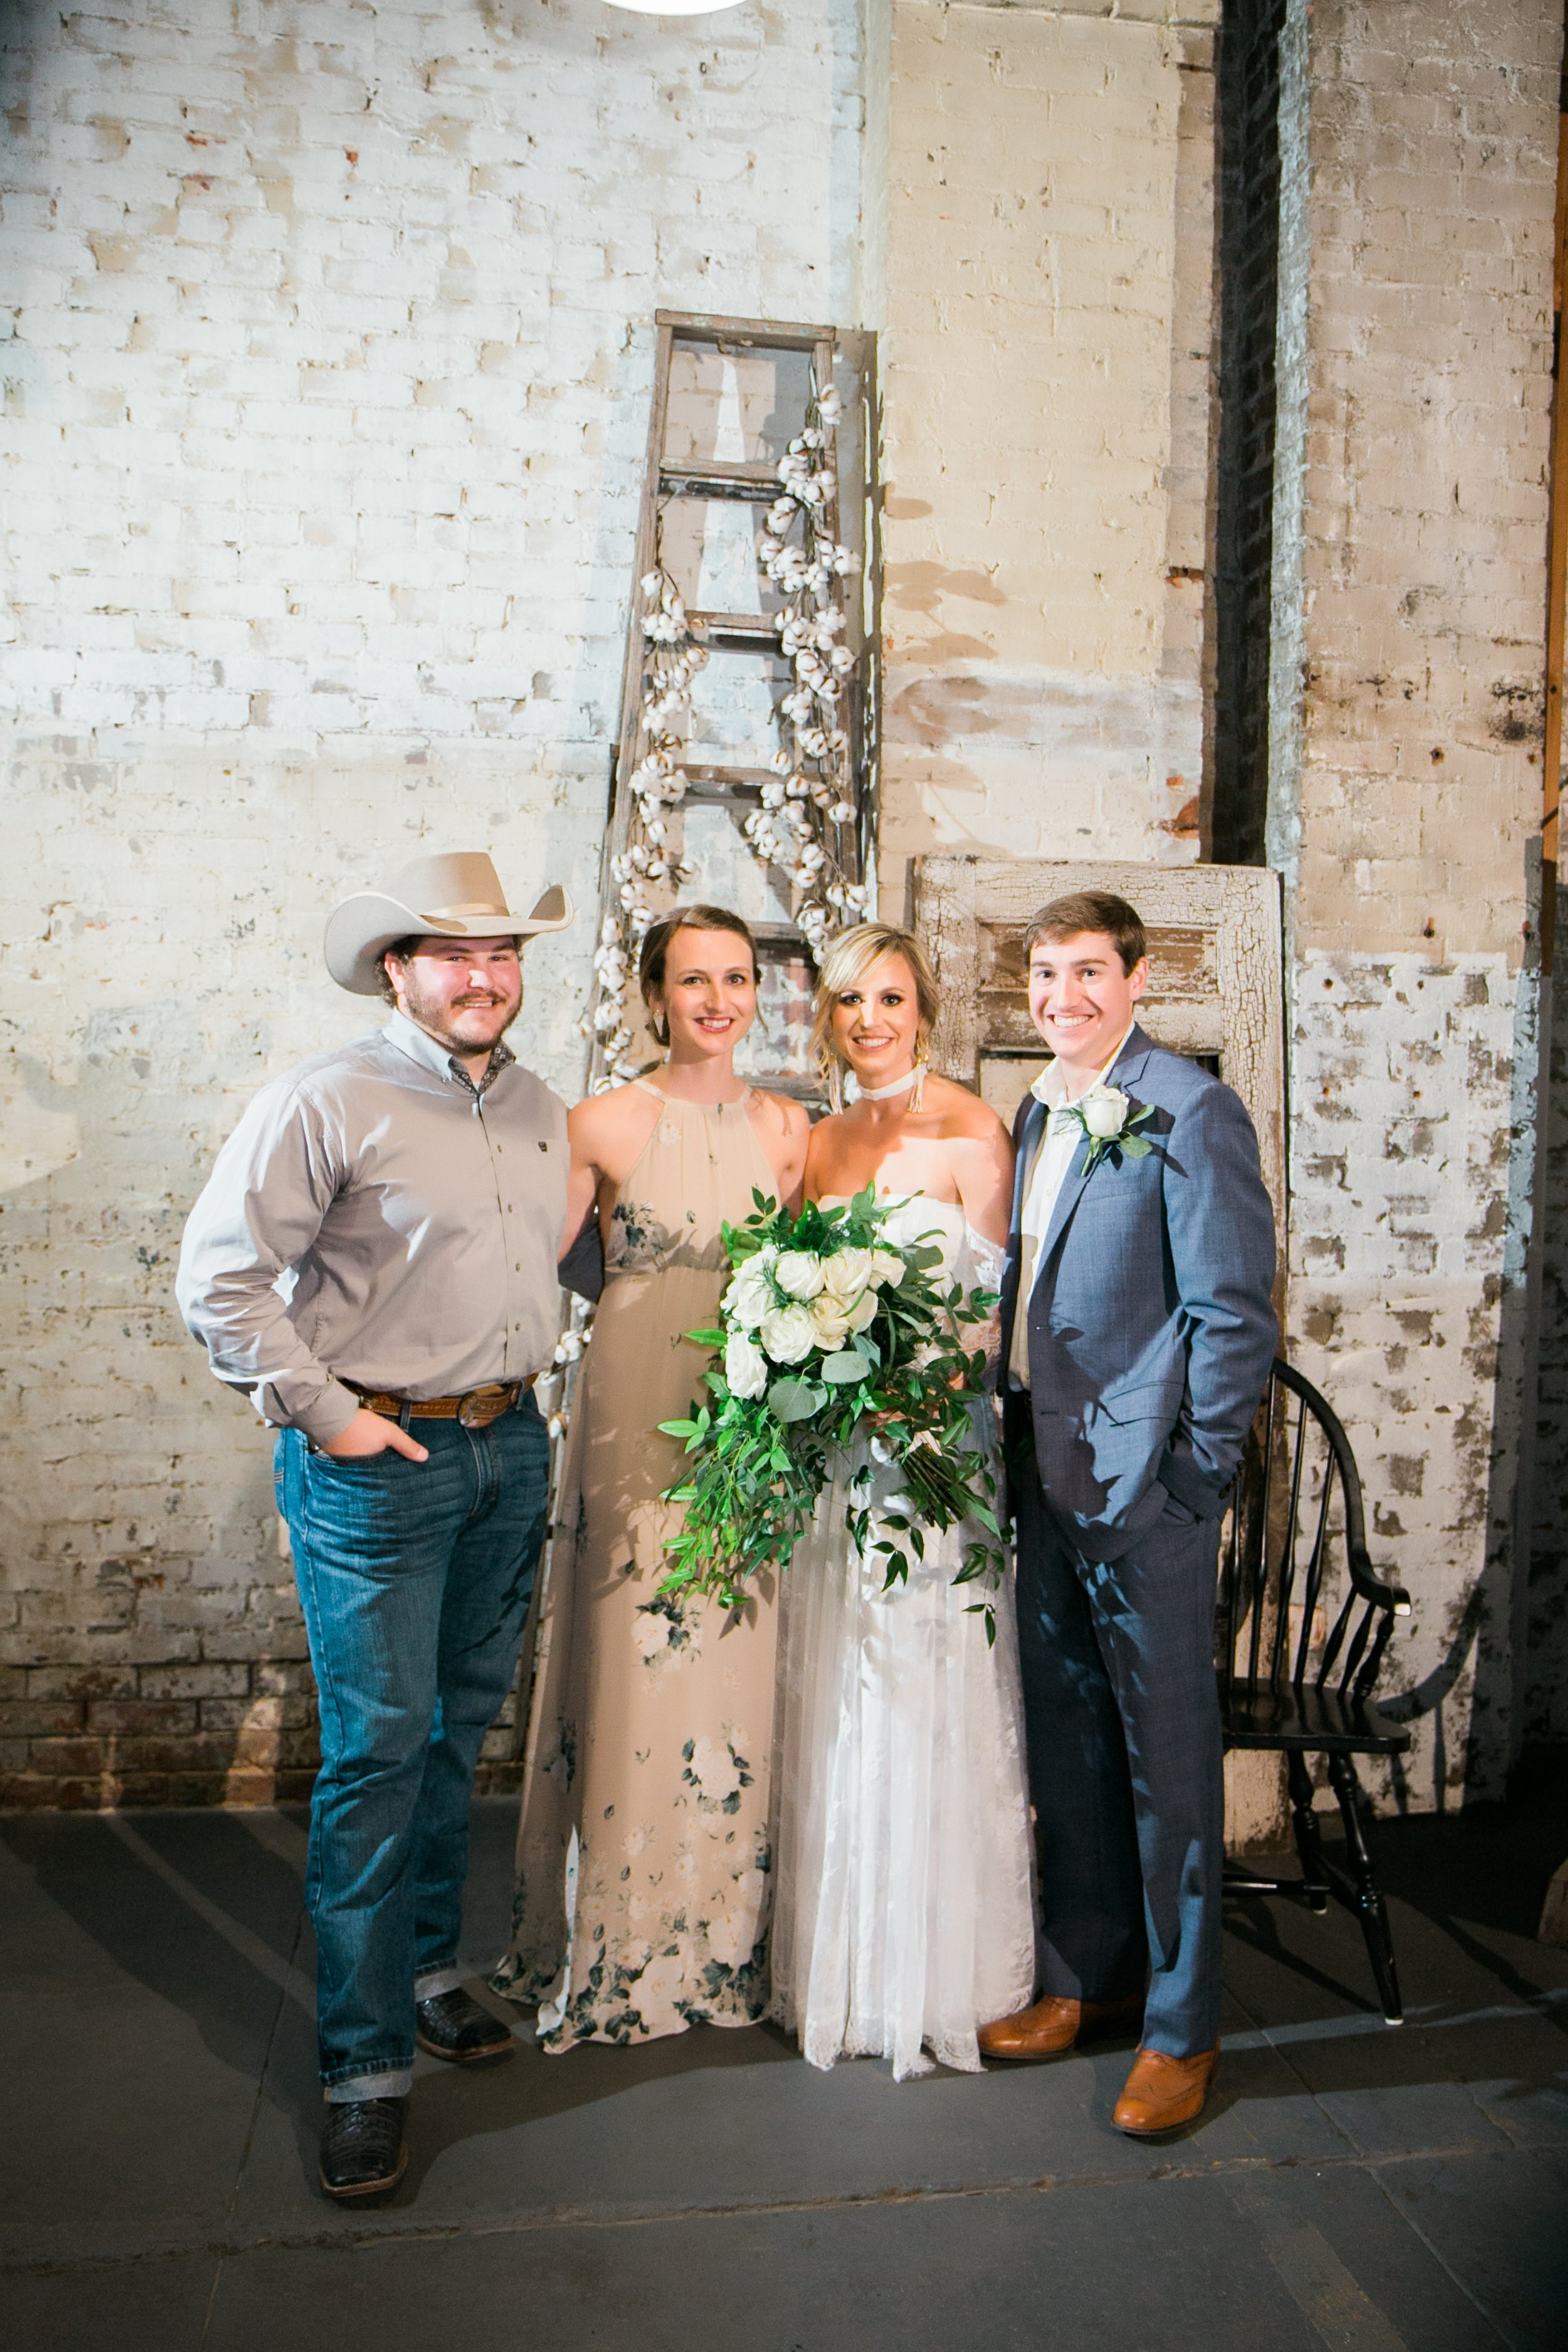 Magan-Landon-Surprise-wedding-at-southern-jeweled-warehouse-wichita-falls-texas-lauren-pinson-063.jpg